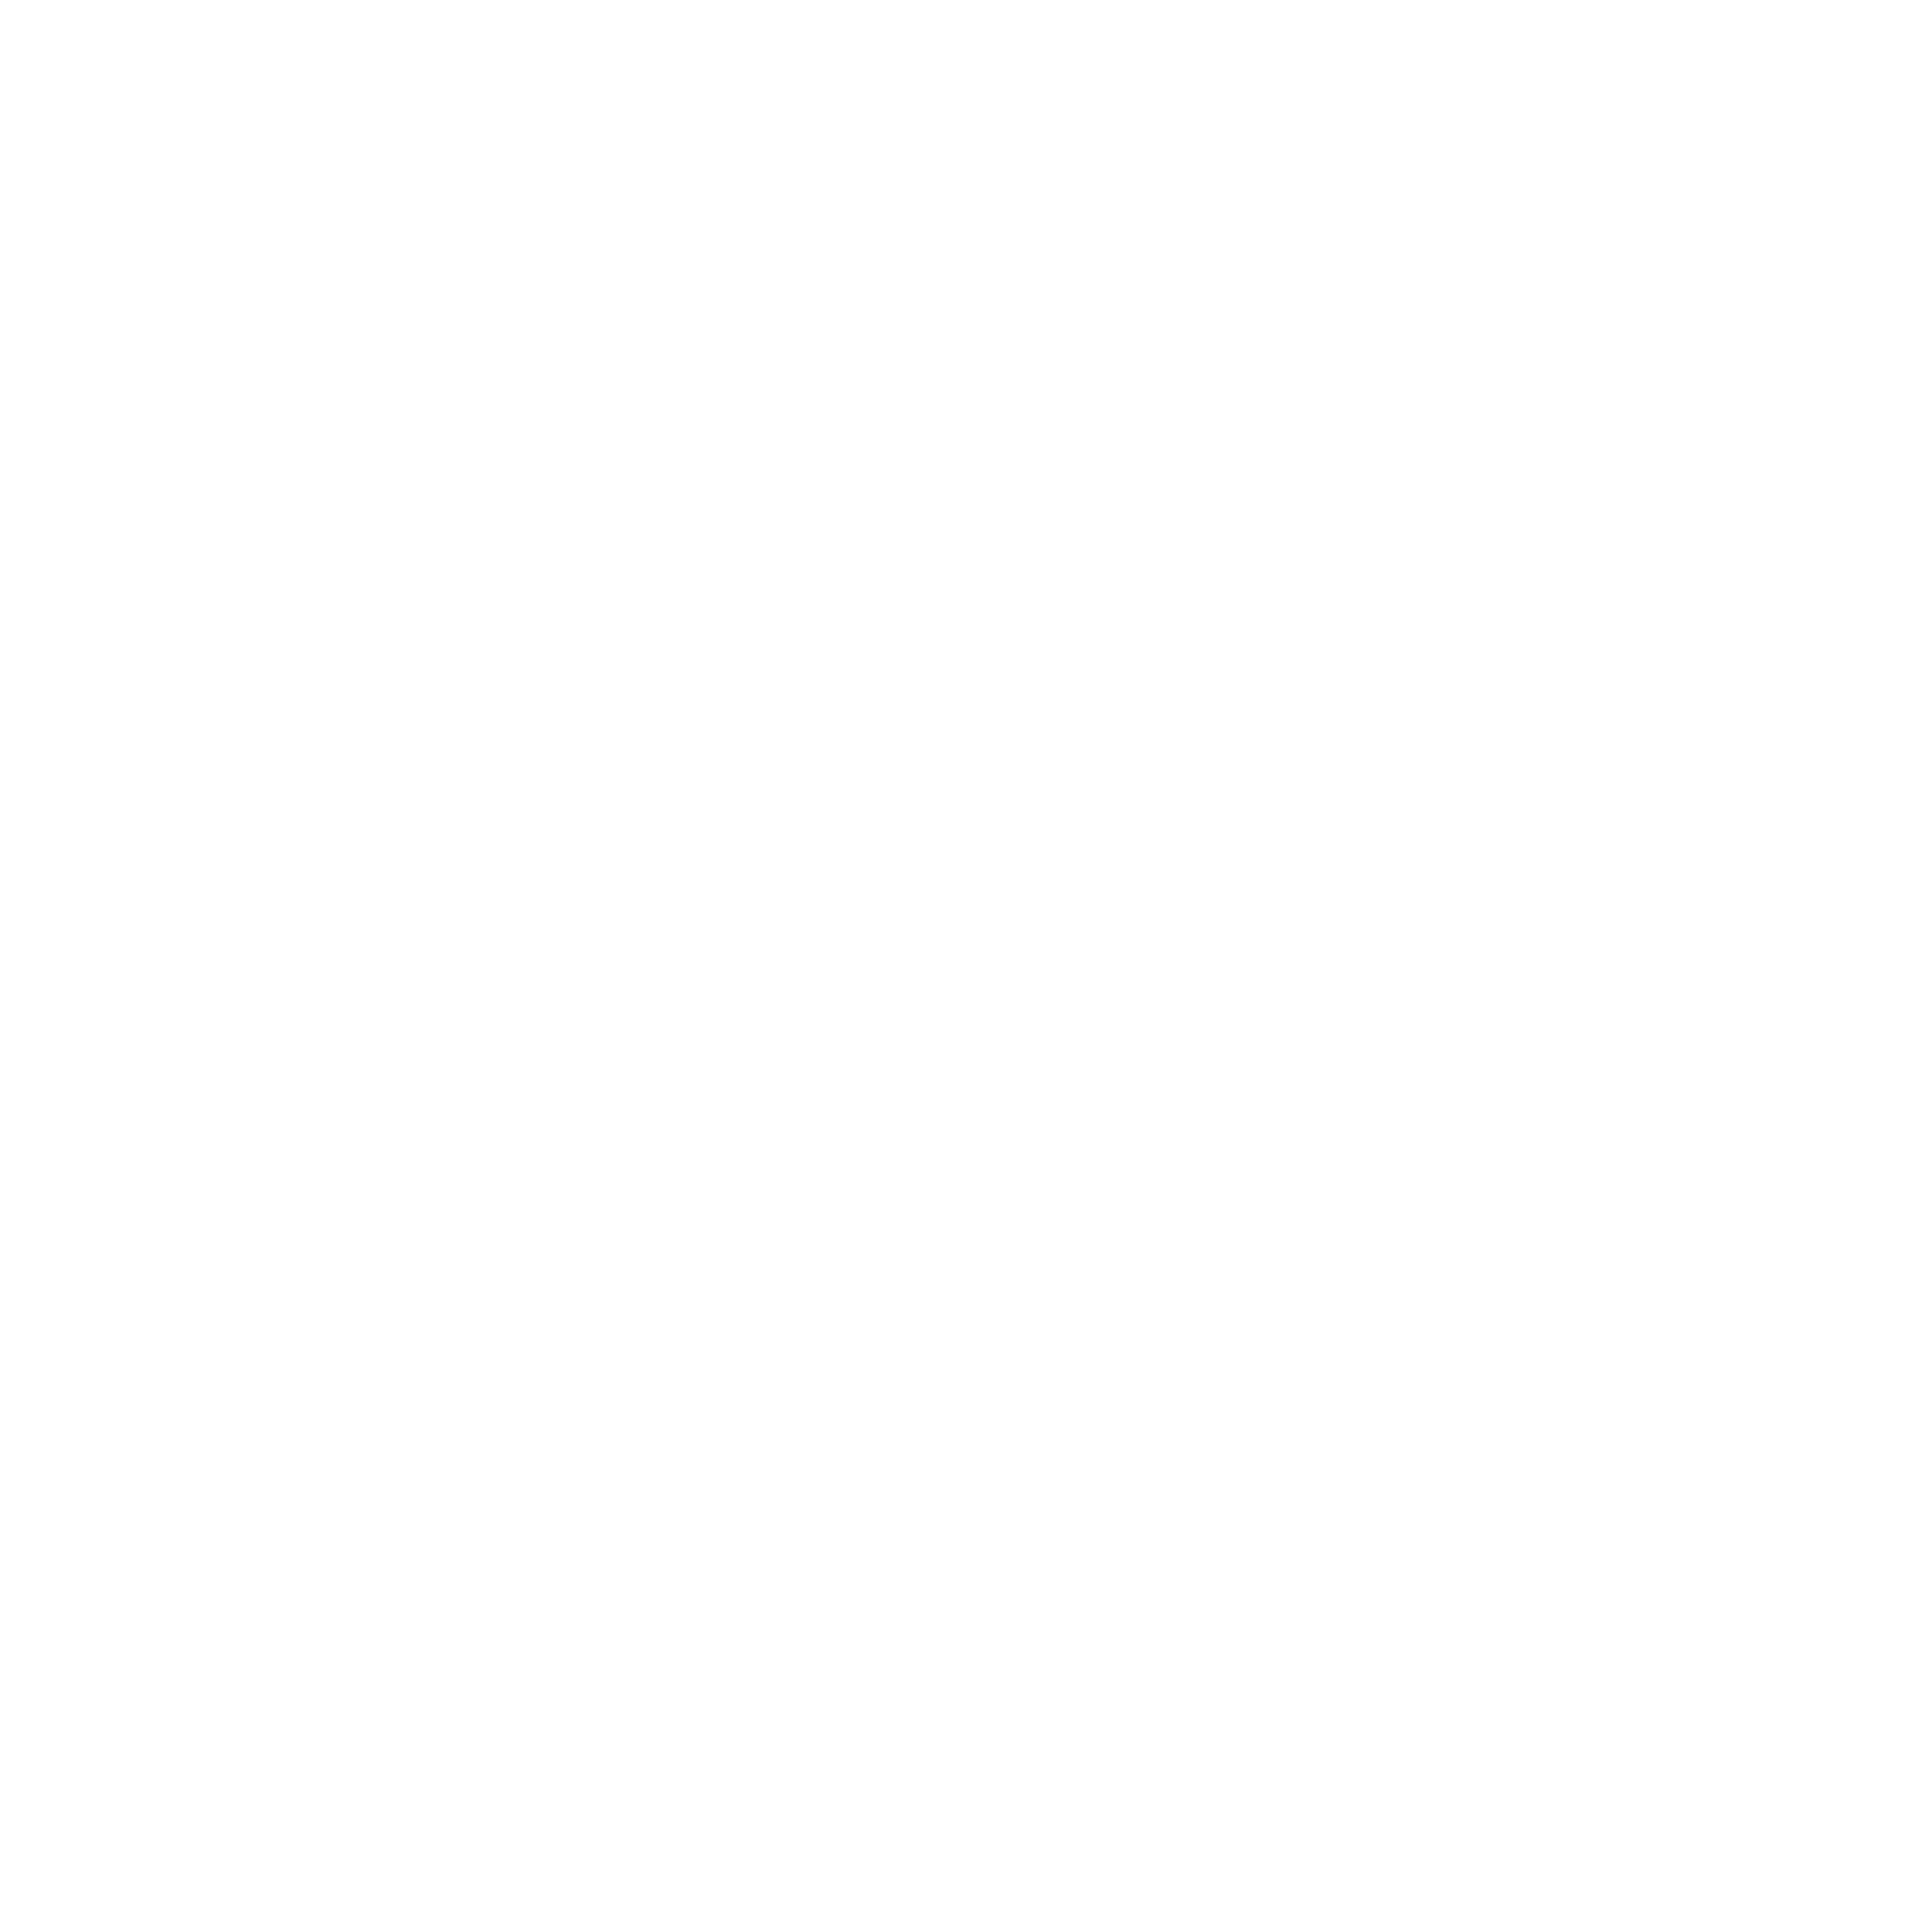 Frogtown Juice Co